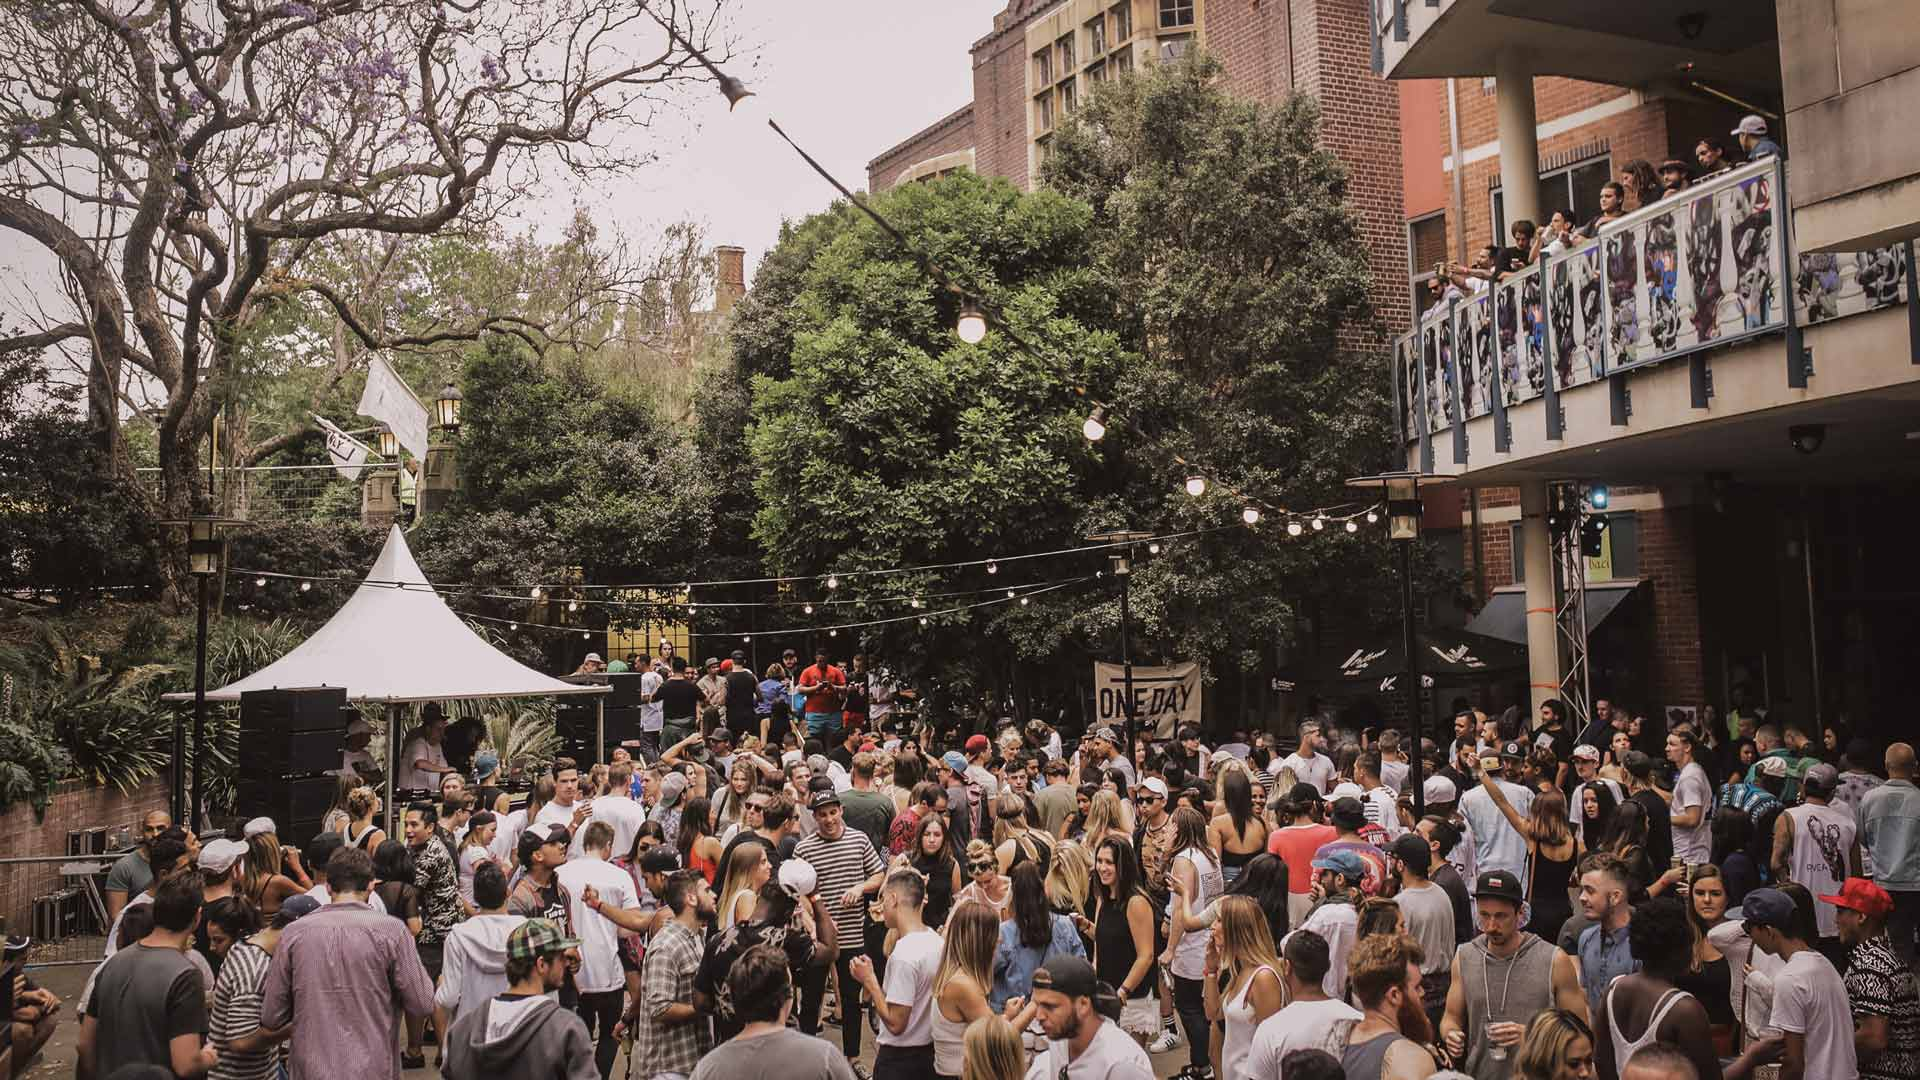 Sydney Summer Gigs and Parties That You Won't Want to Miss Out On This Year